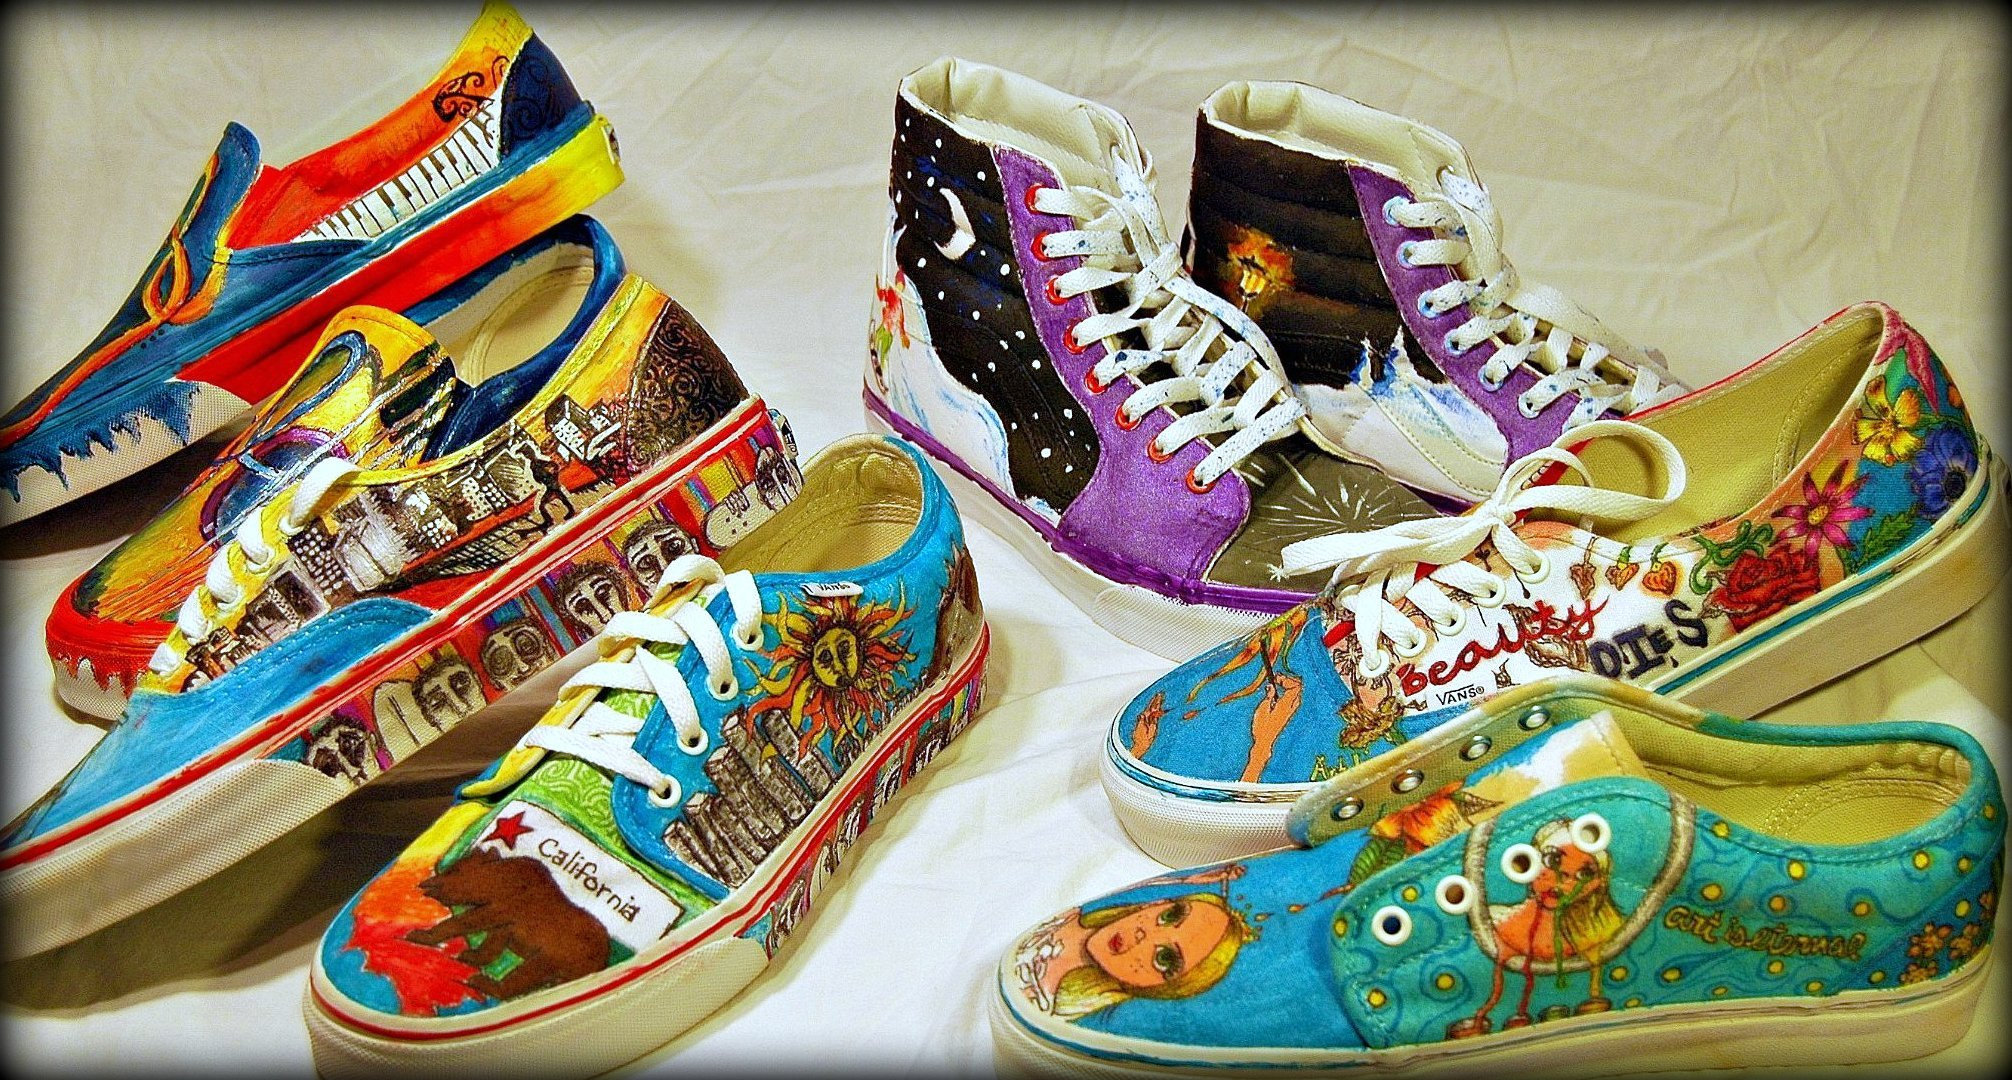 Drawn vans school shoe 000 Art Big Needs Program